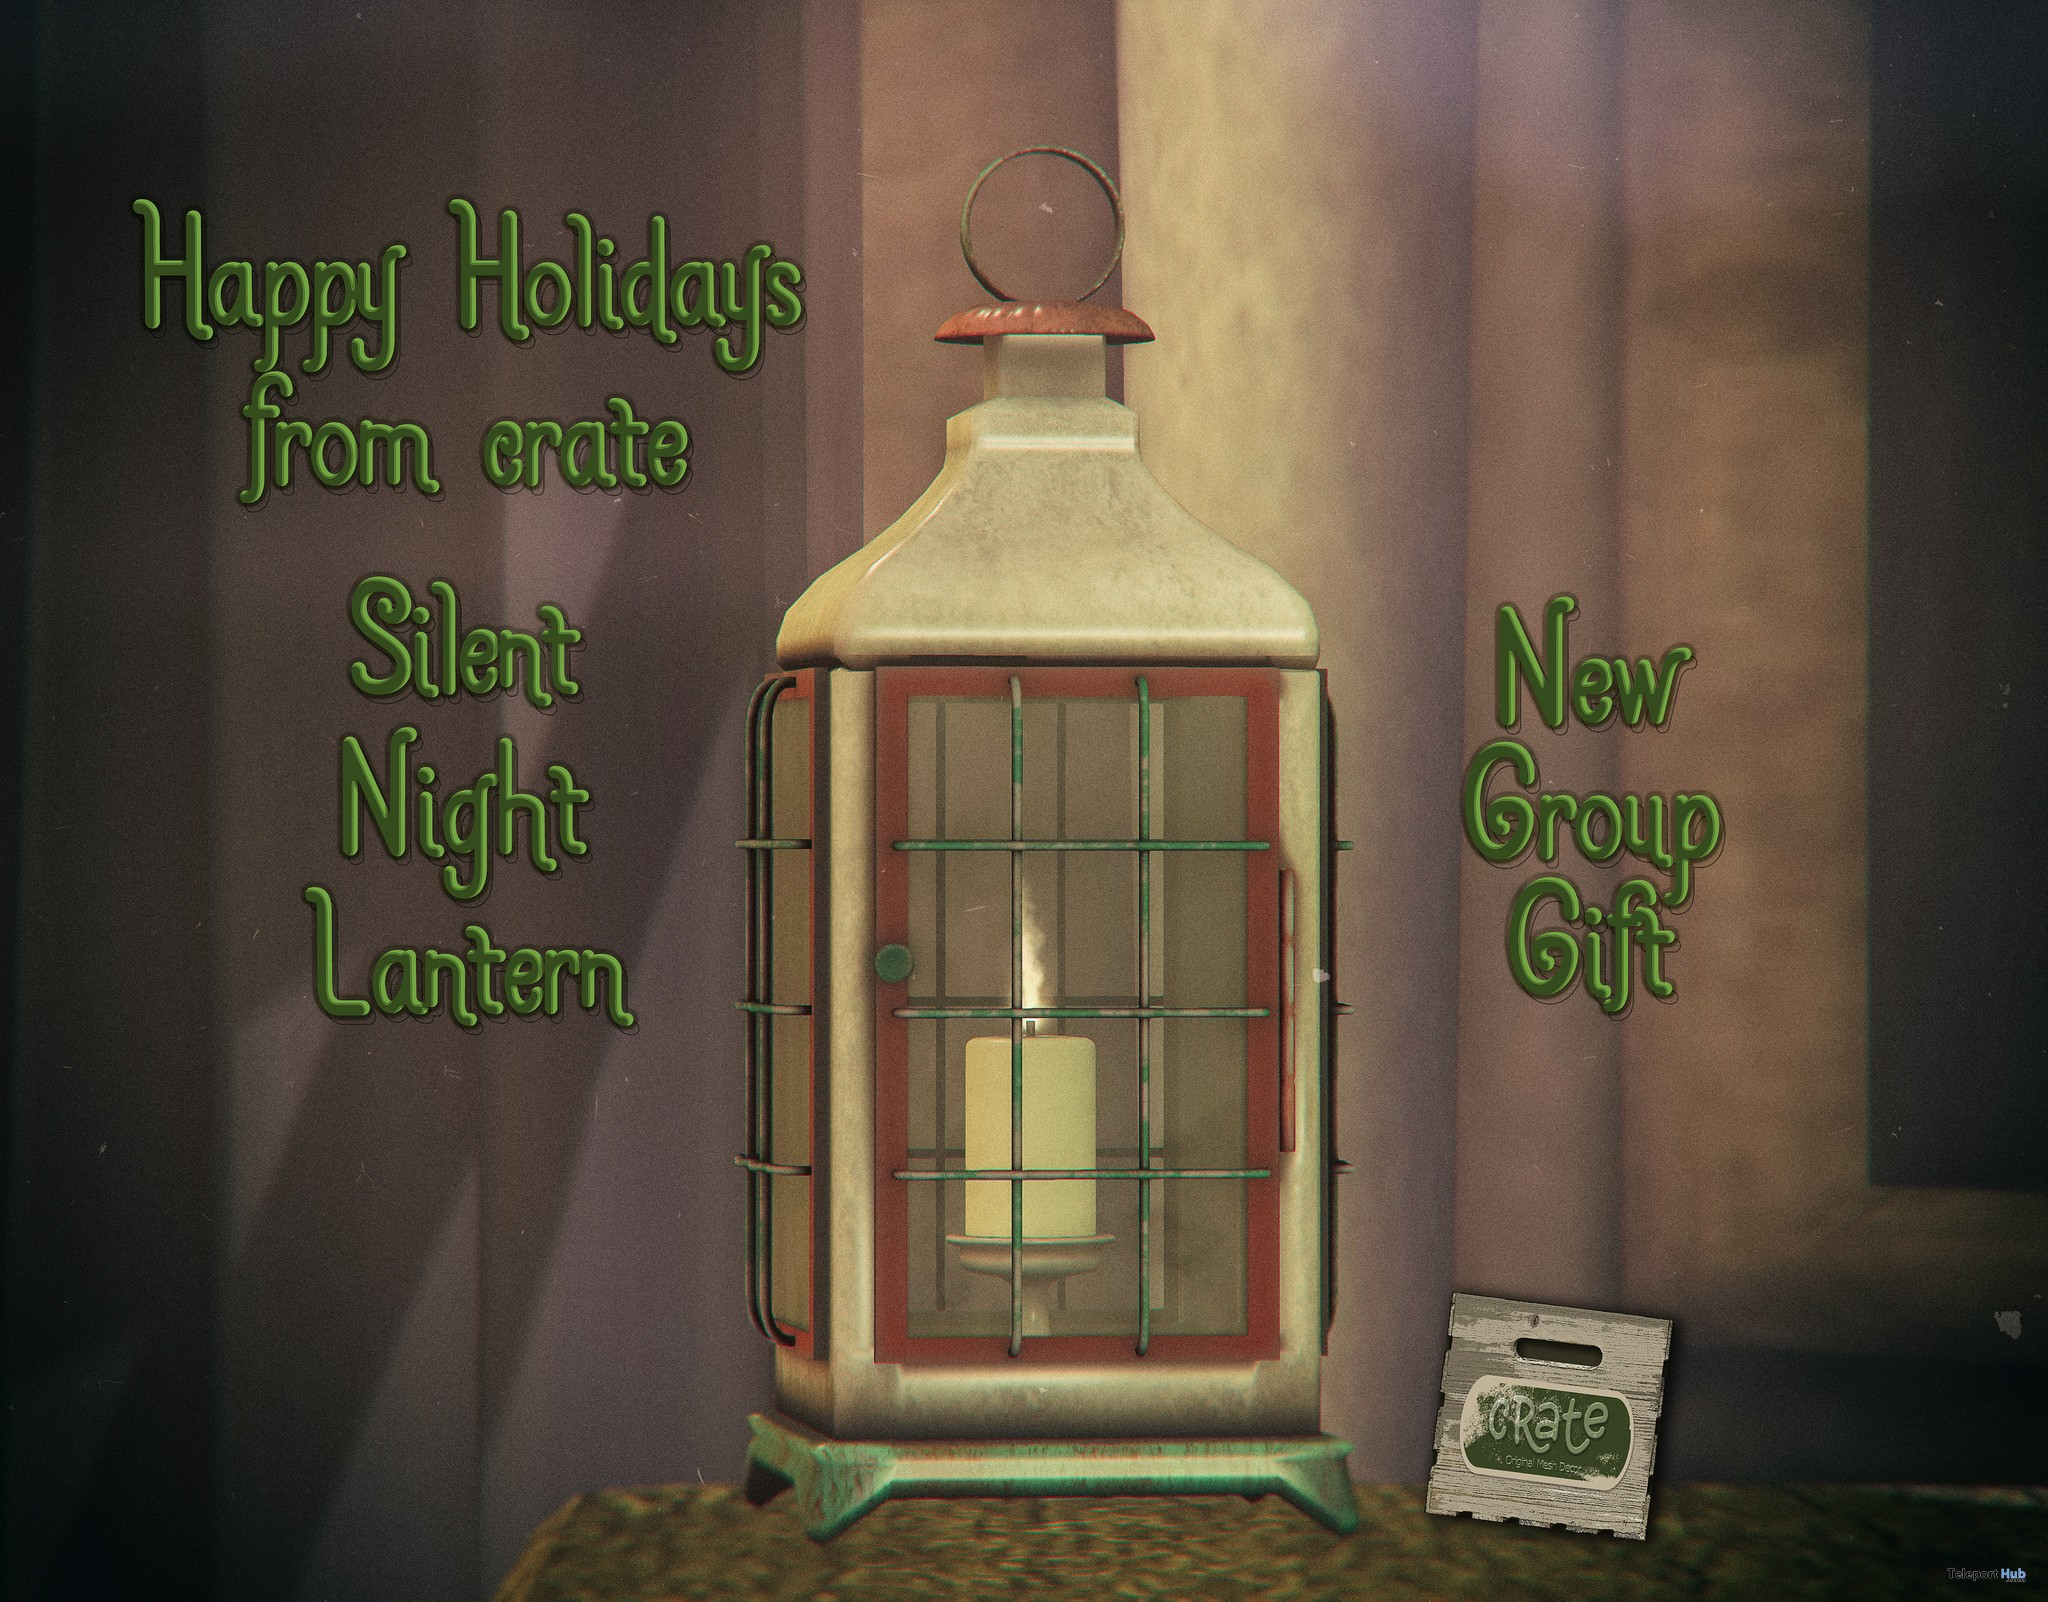 Silent Night Lantern December 2018 Group Gift by crate - Teleport Hub - teleporthub.com